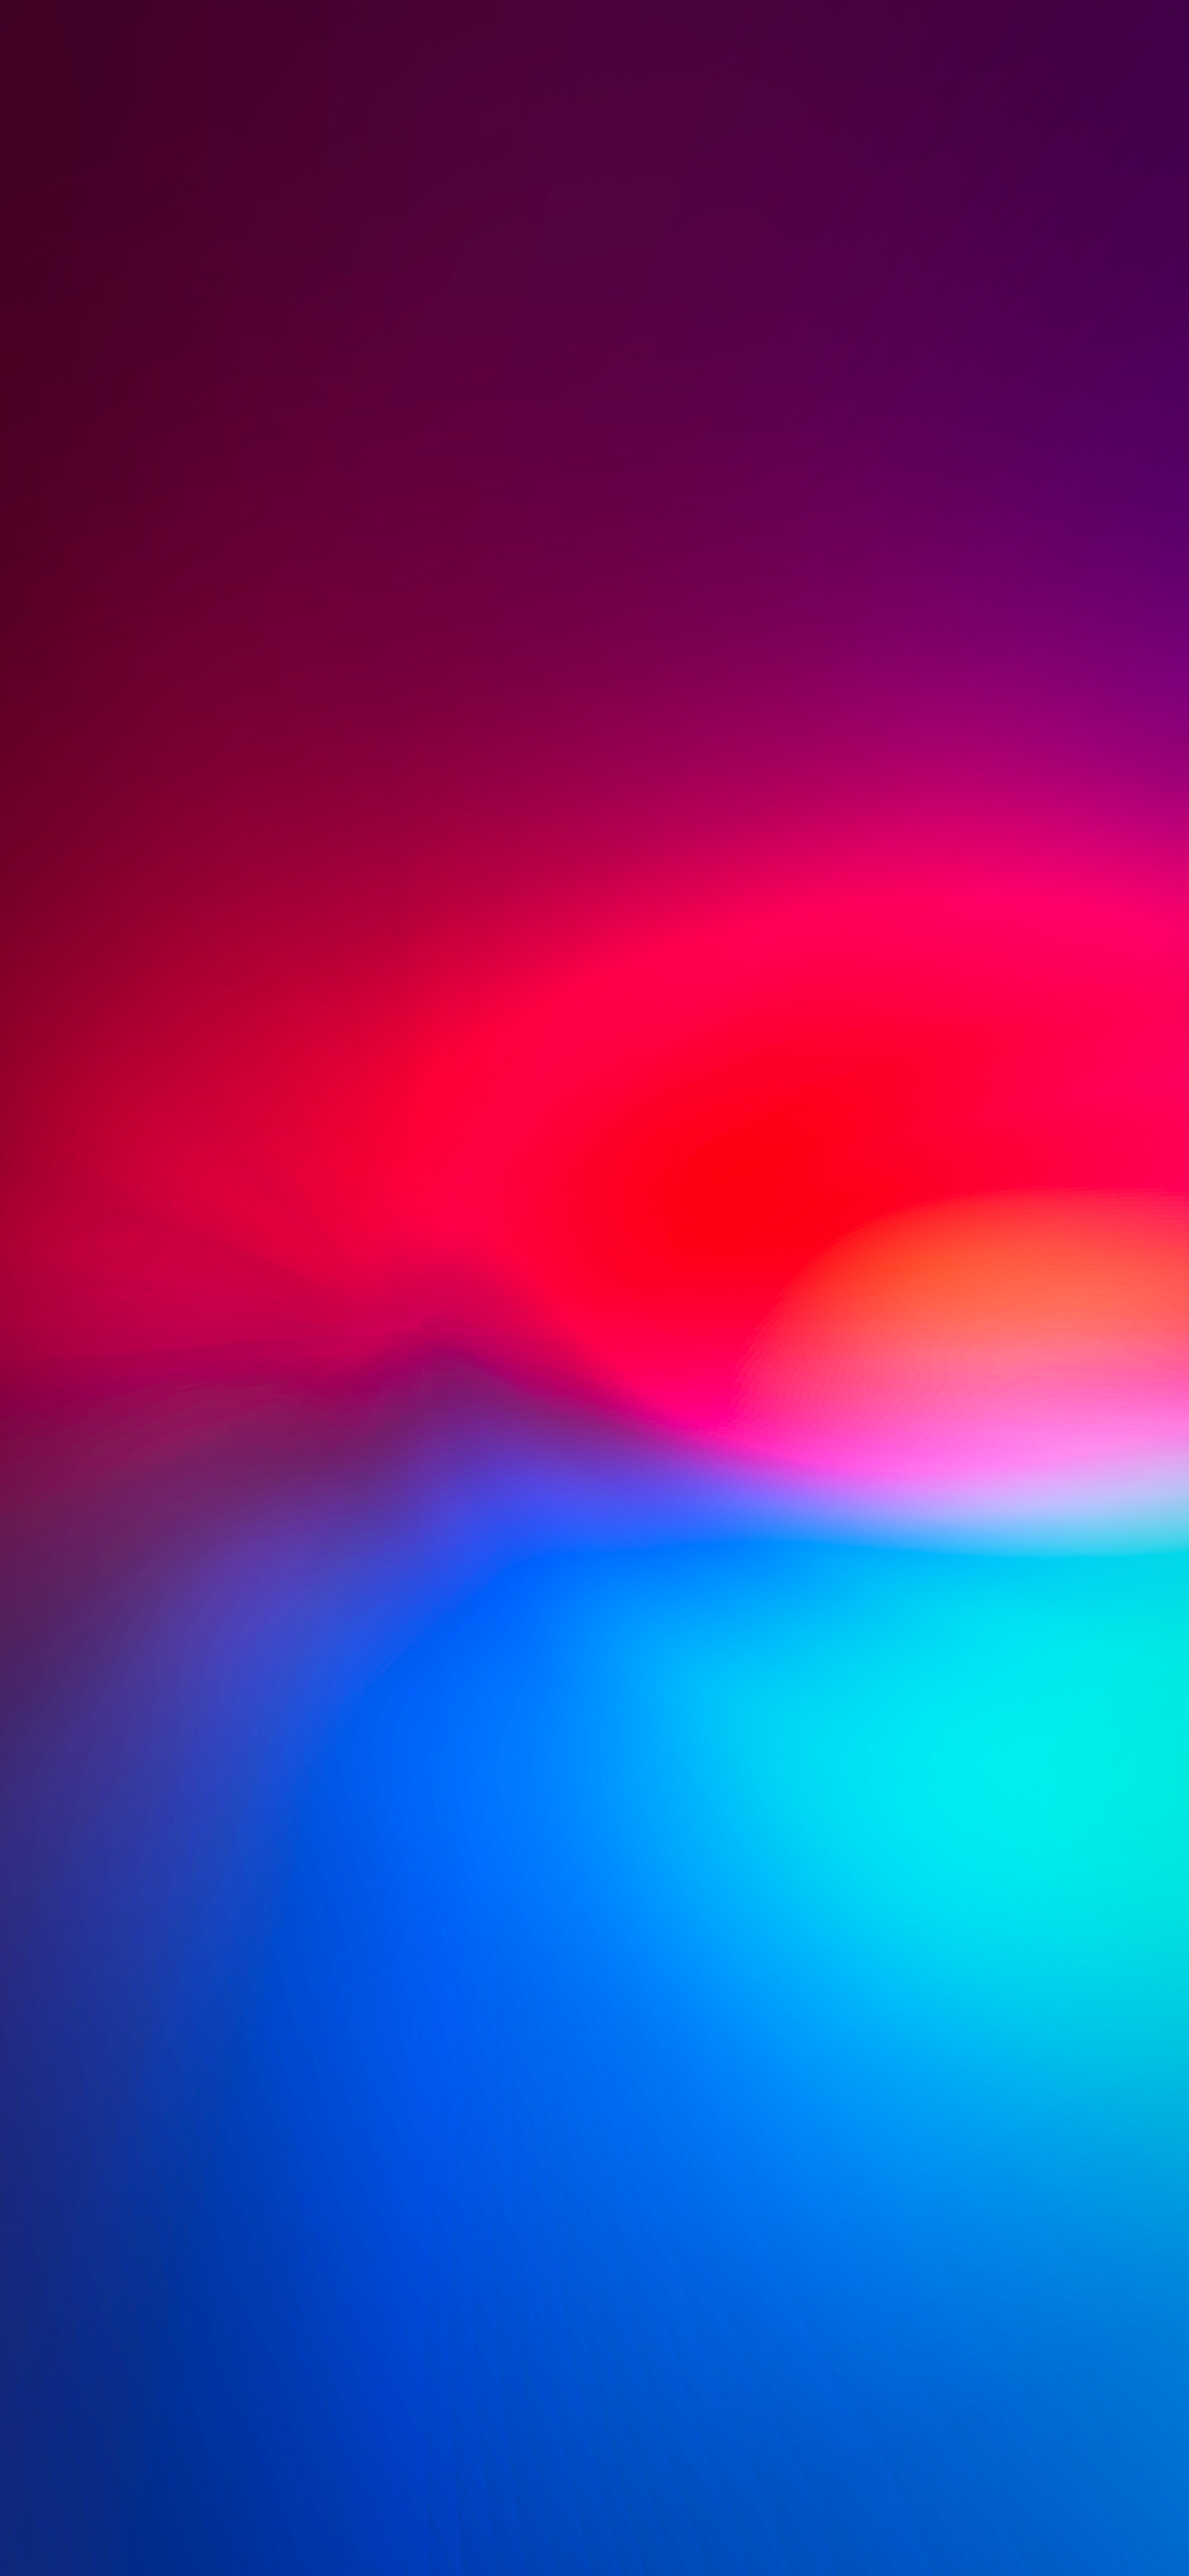 Red To Blue Gradient By Wallsbyjfl On Twitter Samsung Wallpaper Blue Wallpaper Iphone Android Wallpaper Blue